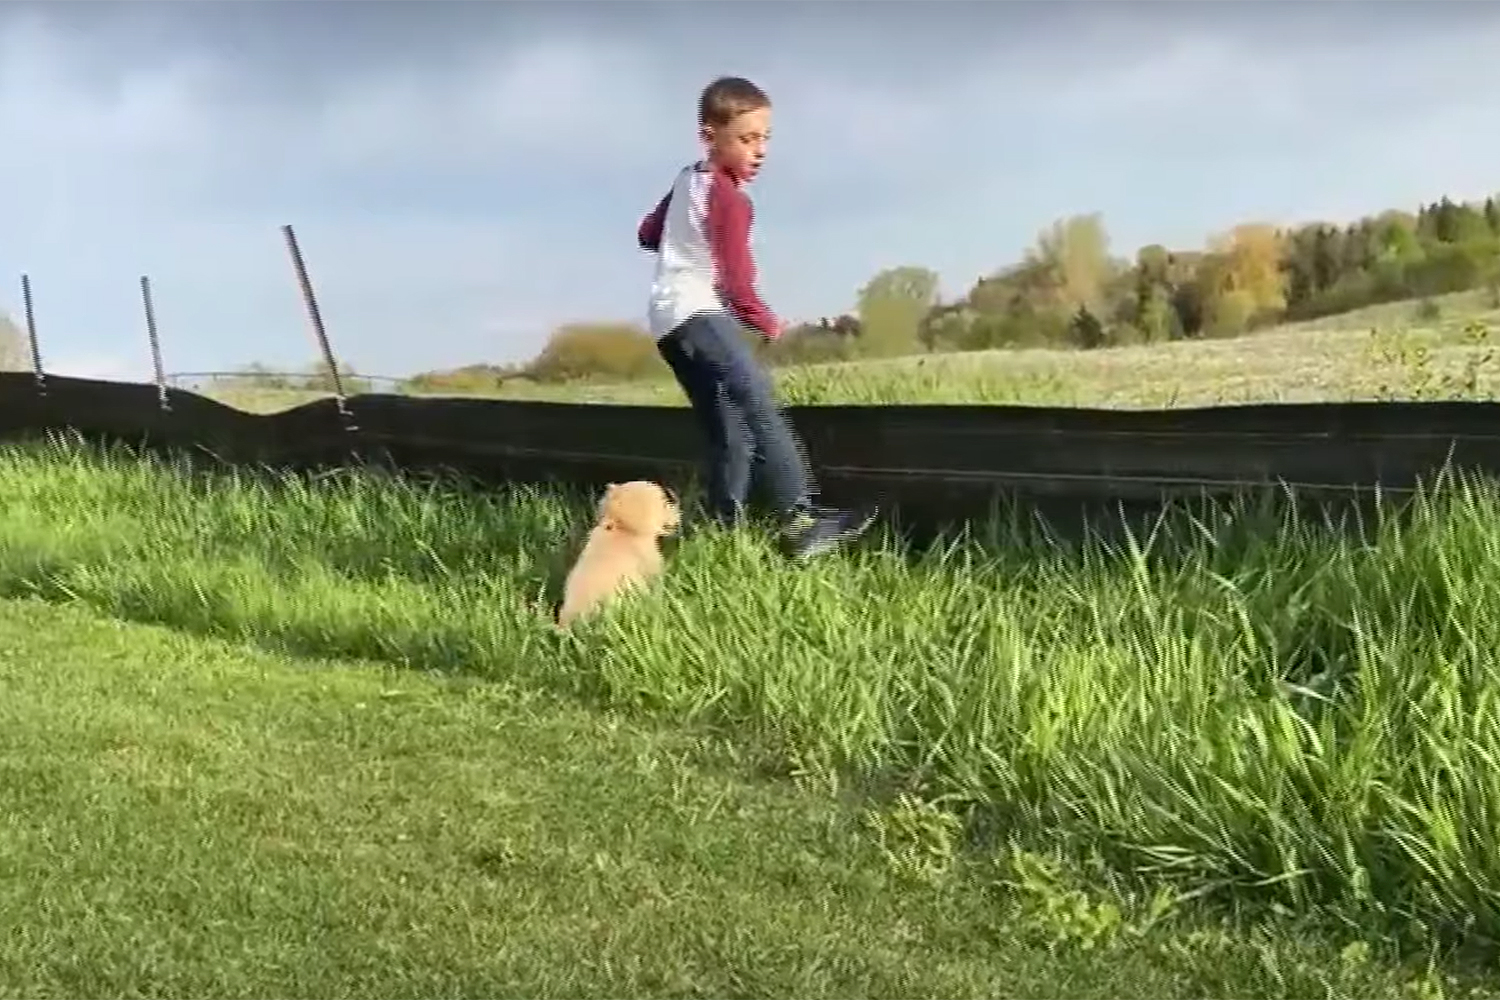 Minnesota Boy with Prosthetic Leg Finds His Furry Friend in Golden Retriever Puppy Born Without Paw